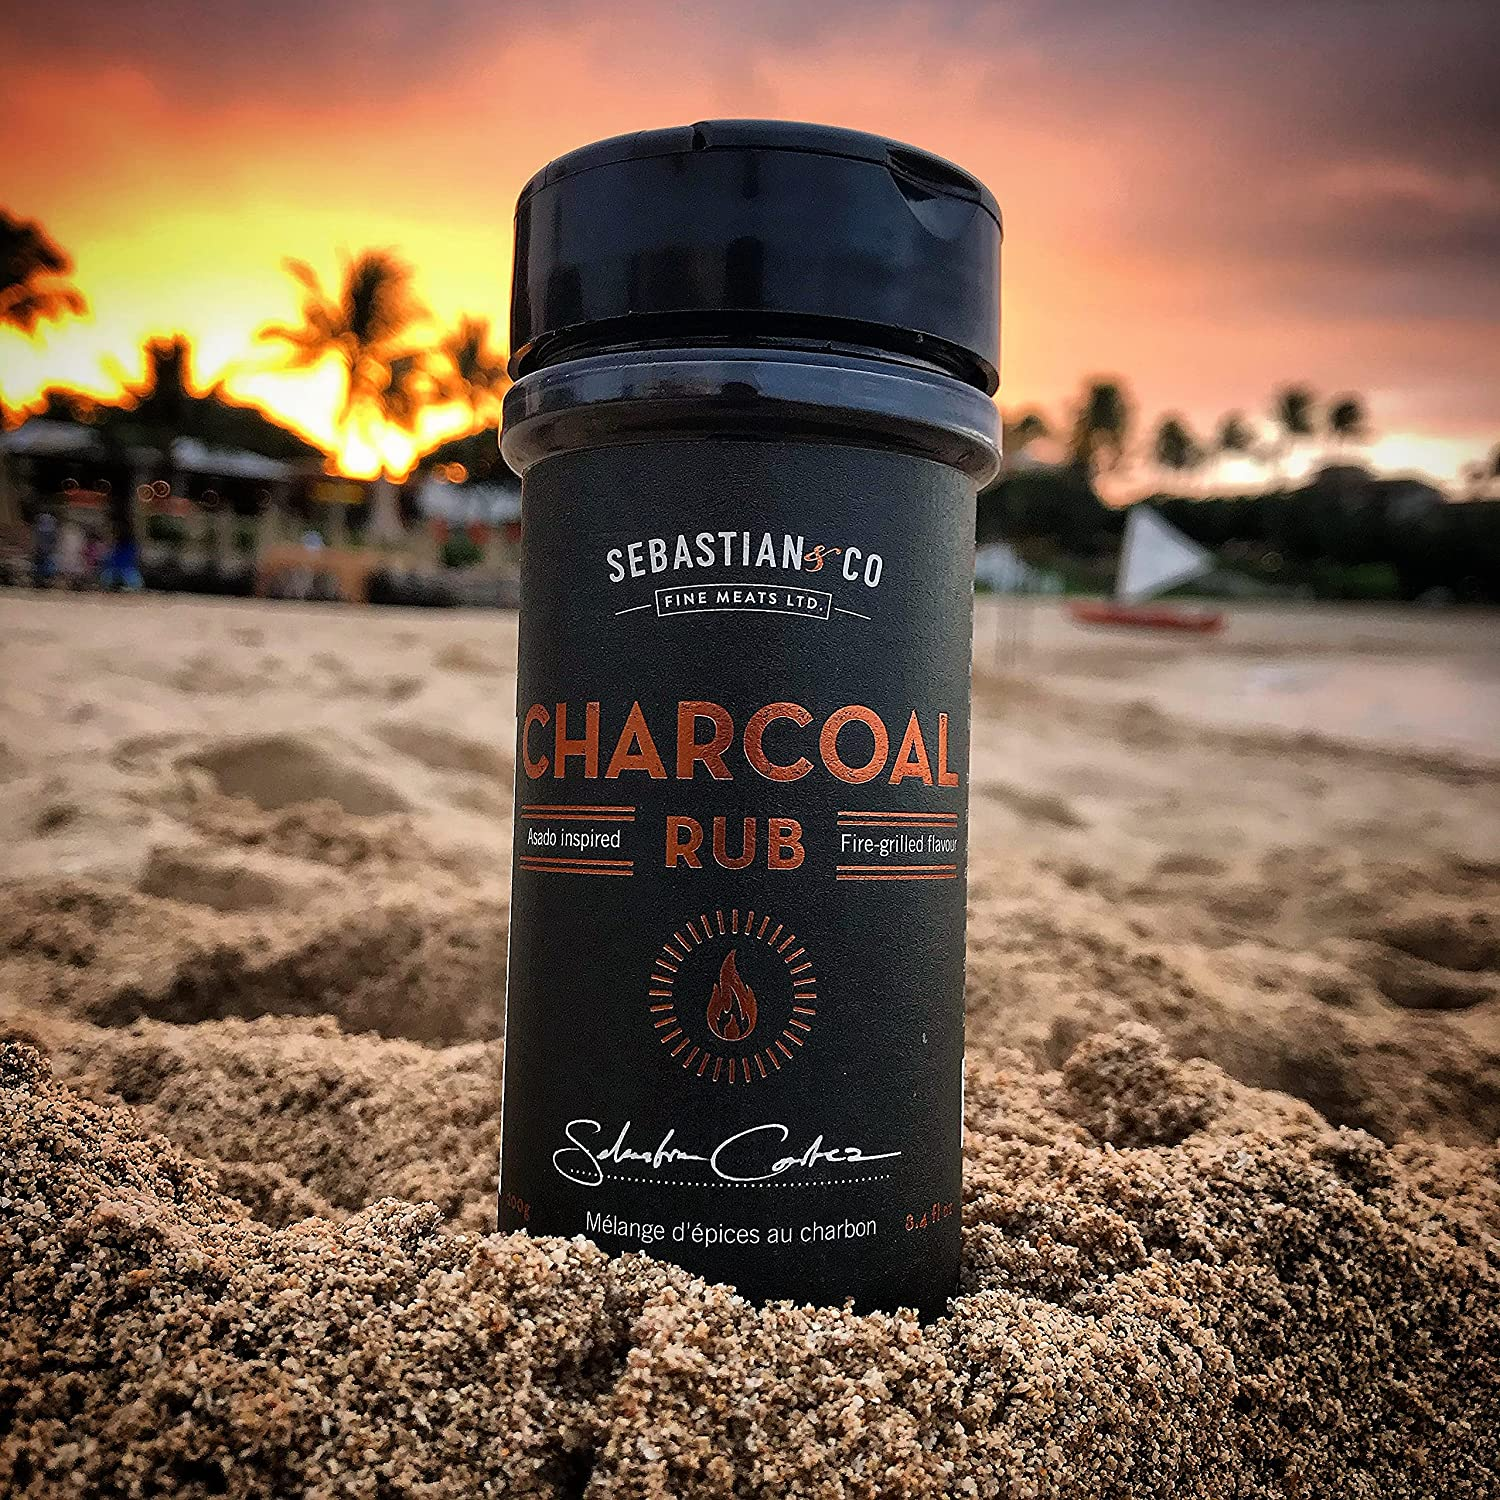 Sebastian Co Popular products Lowest price challenge Asado-Inspired Charcoal Rub